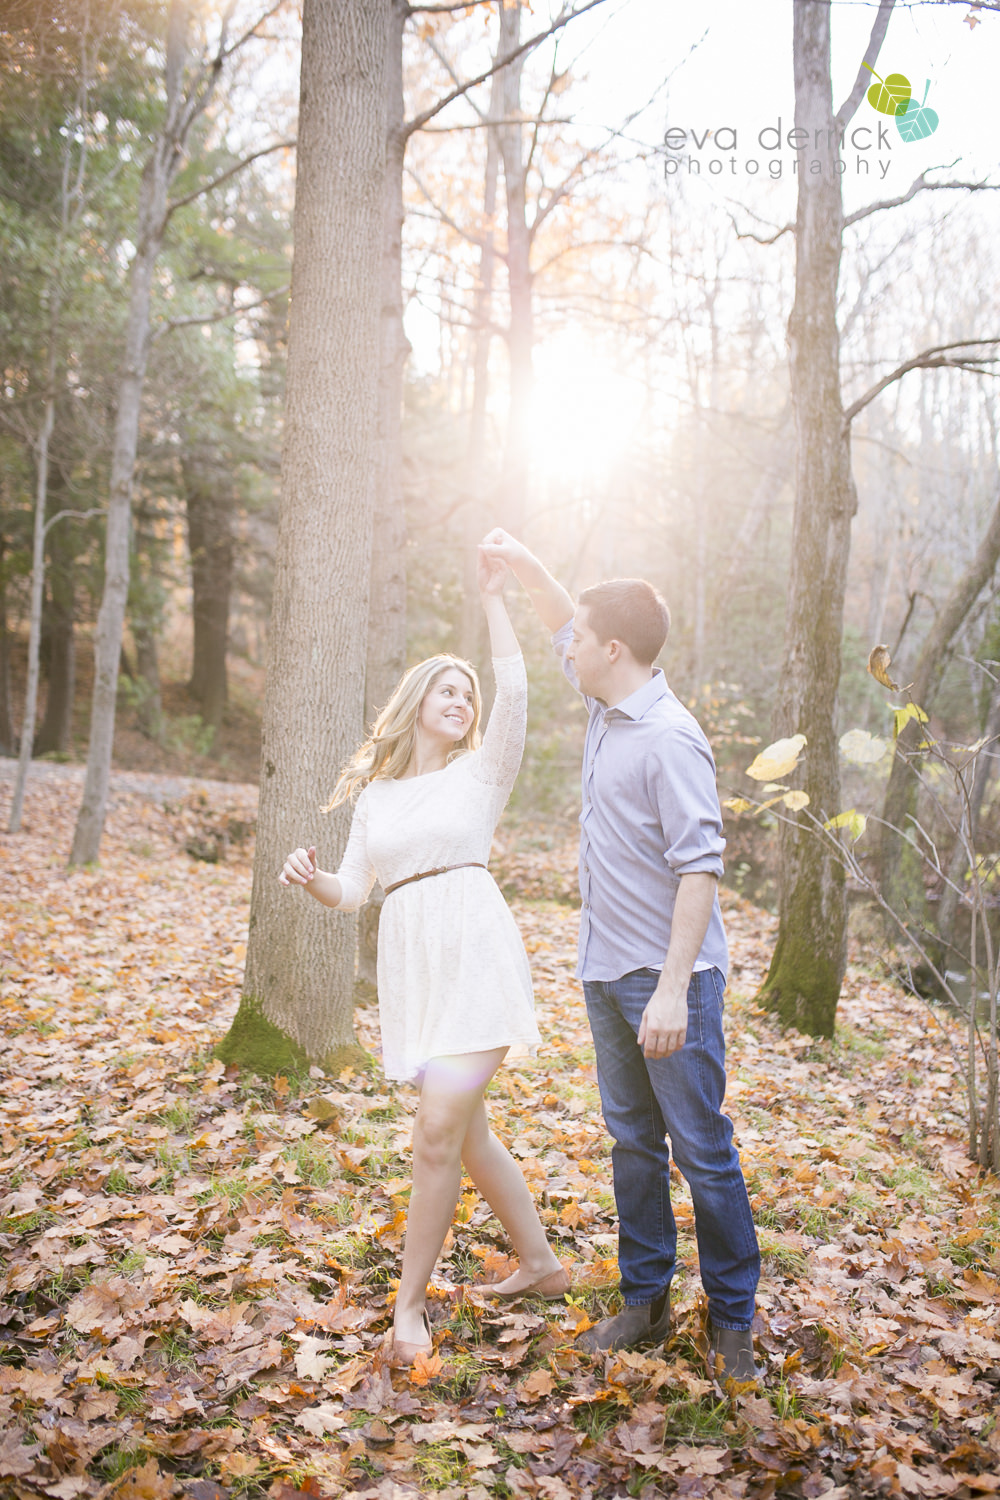 Albion-Hills-Photographer-Engagement-Session-Alanna-Matt-photography-by-Eva-Derrick-Photography-009.JPG